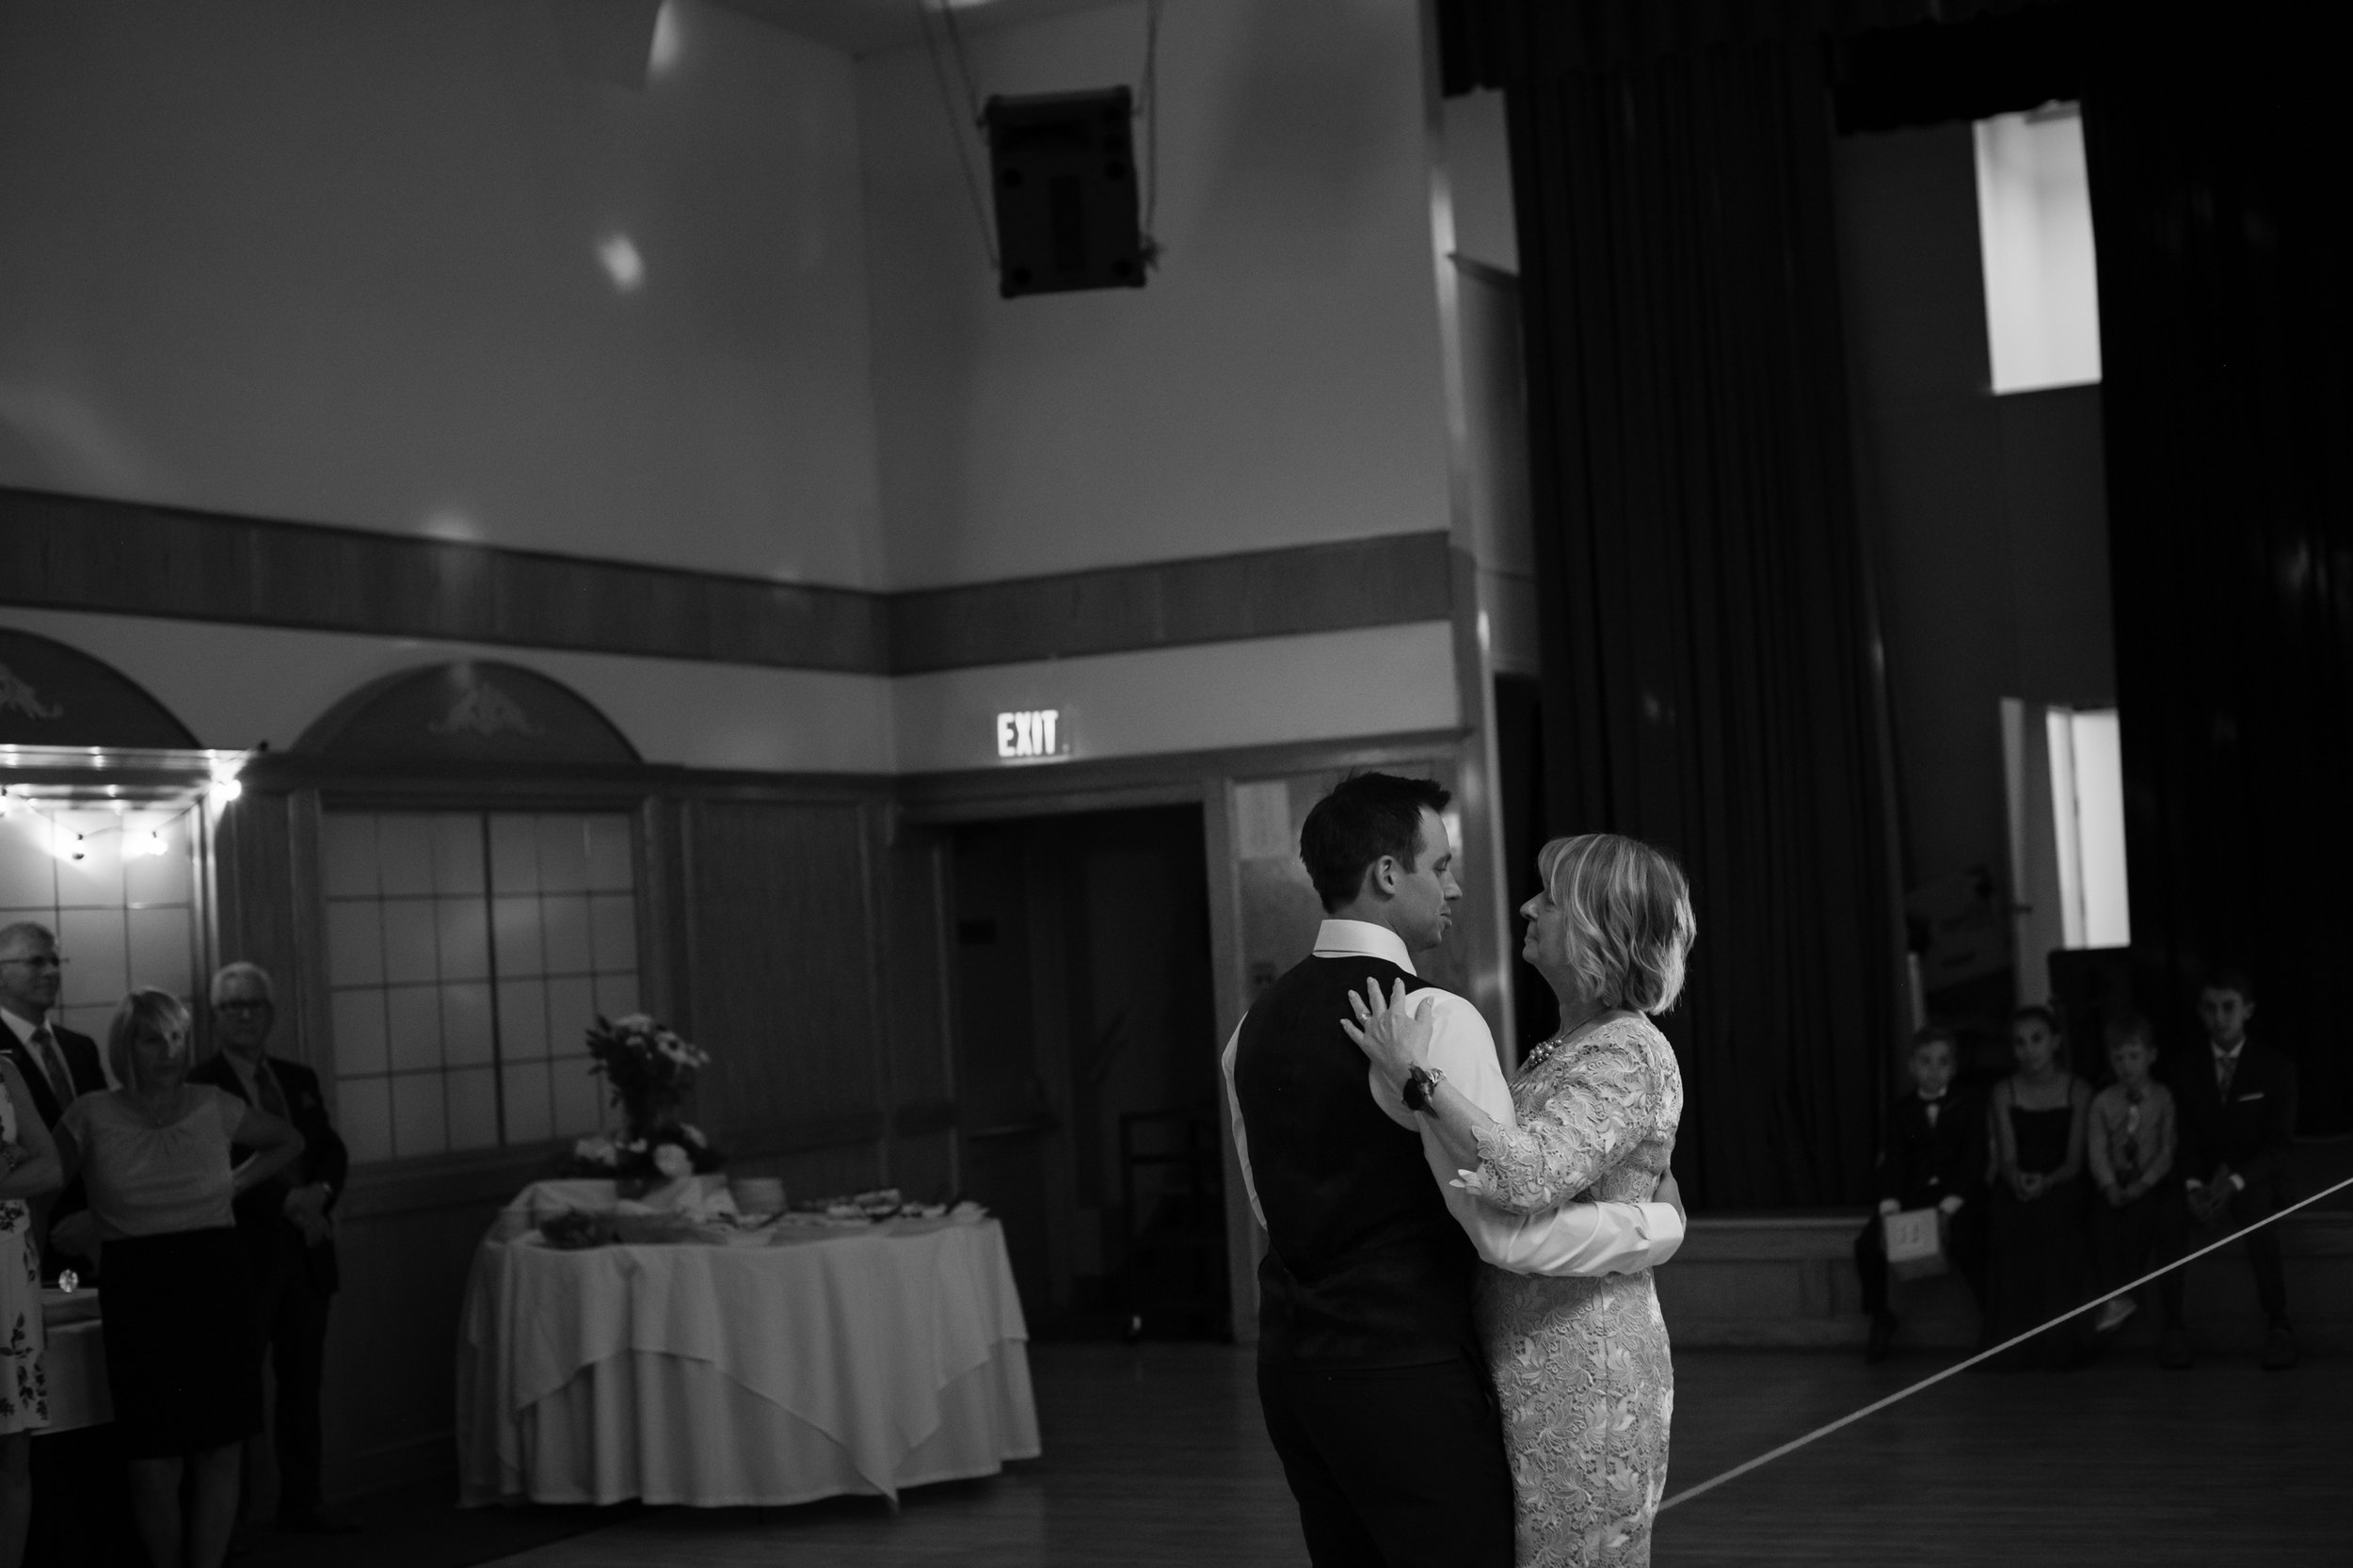 Laura_Danny_Wedding_Sneak_Peek_096.jpg